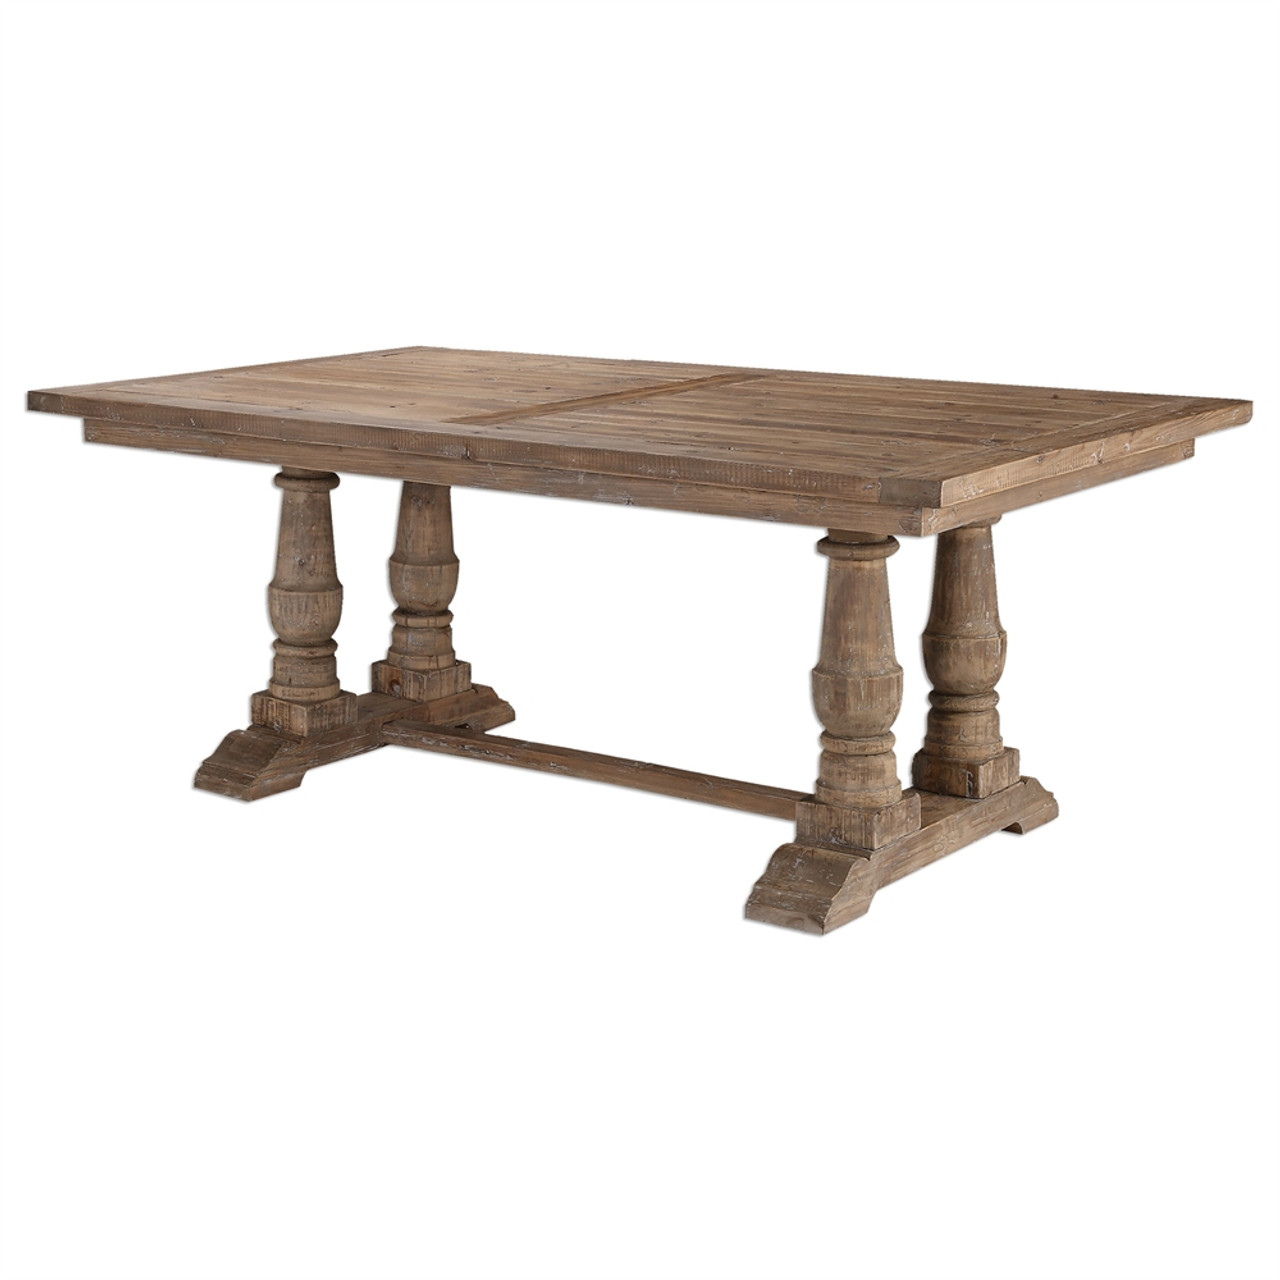 Salvaged Wood Double Trestle Dining Table Zin Home - Double trestle dining table